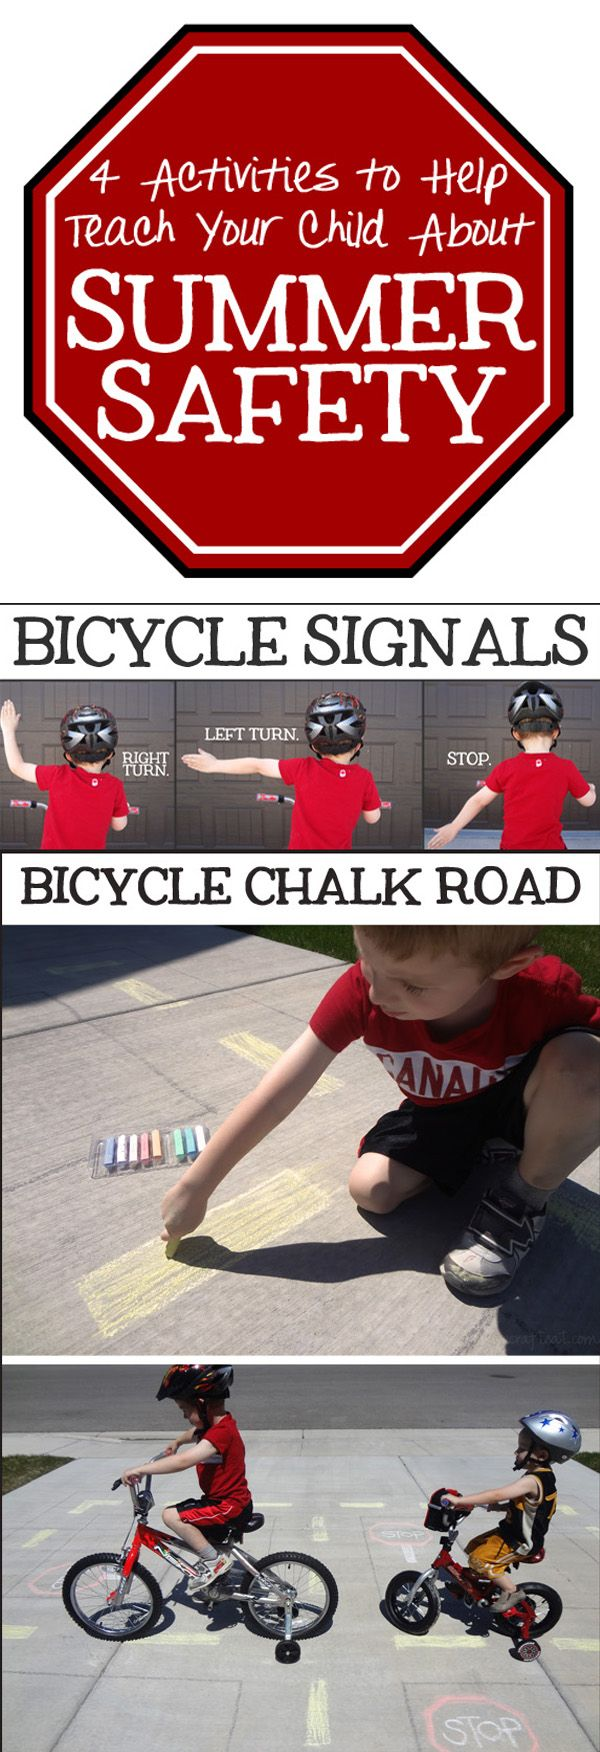 Summer safety, part 2 (in celebration of National Bike Safety Month!)